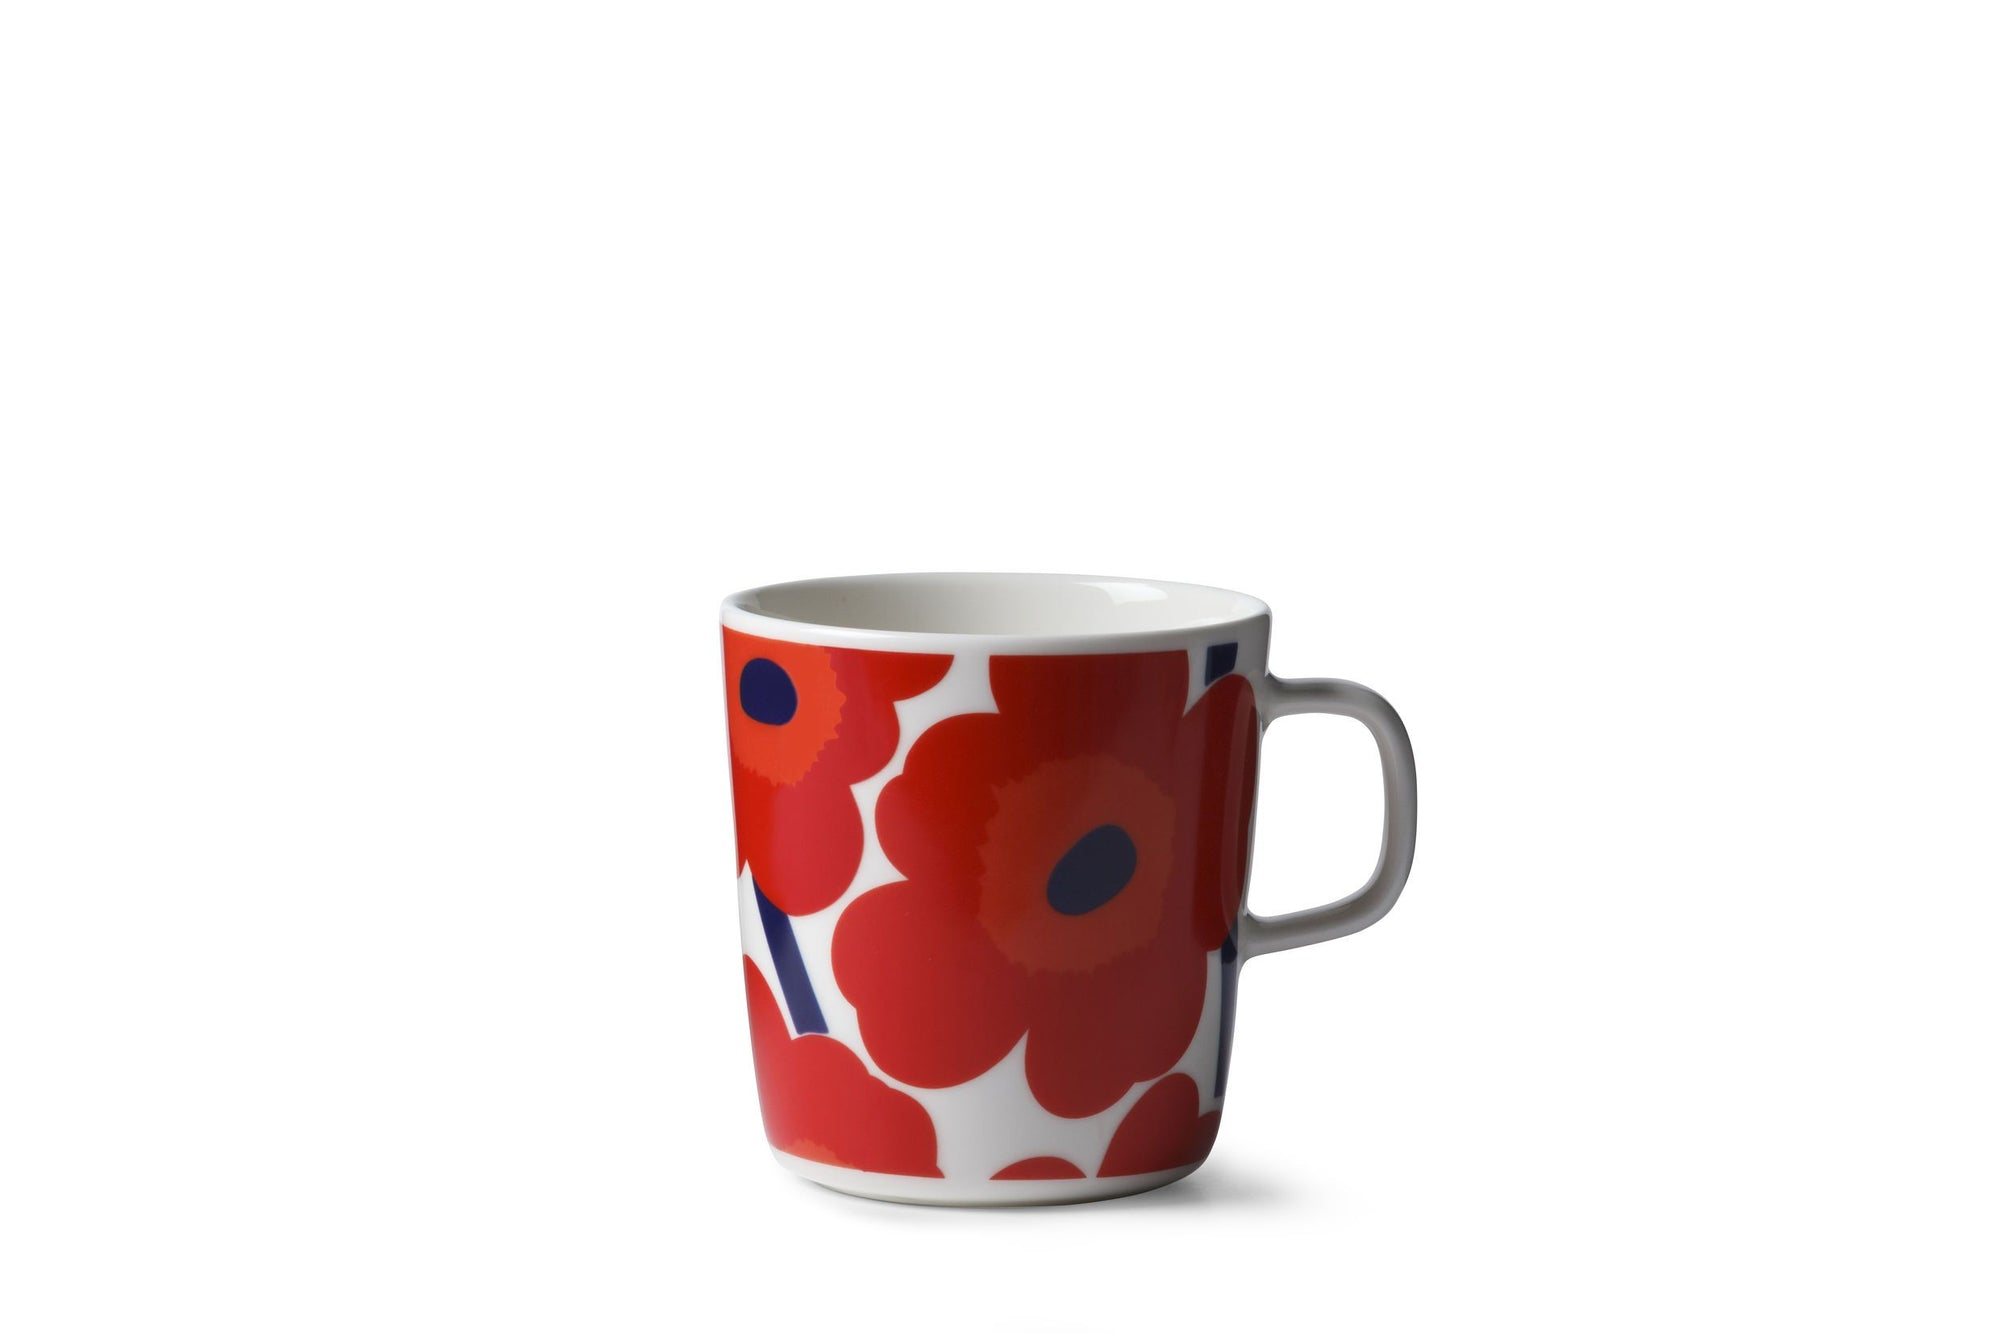 Marimekko, Unikko Large Mug, White/Red- Placewares